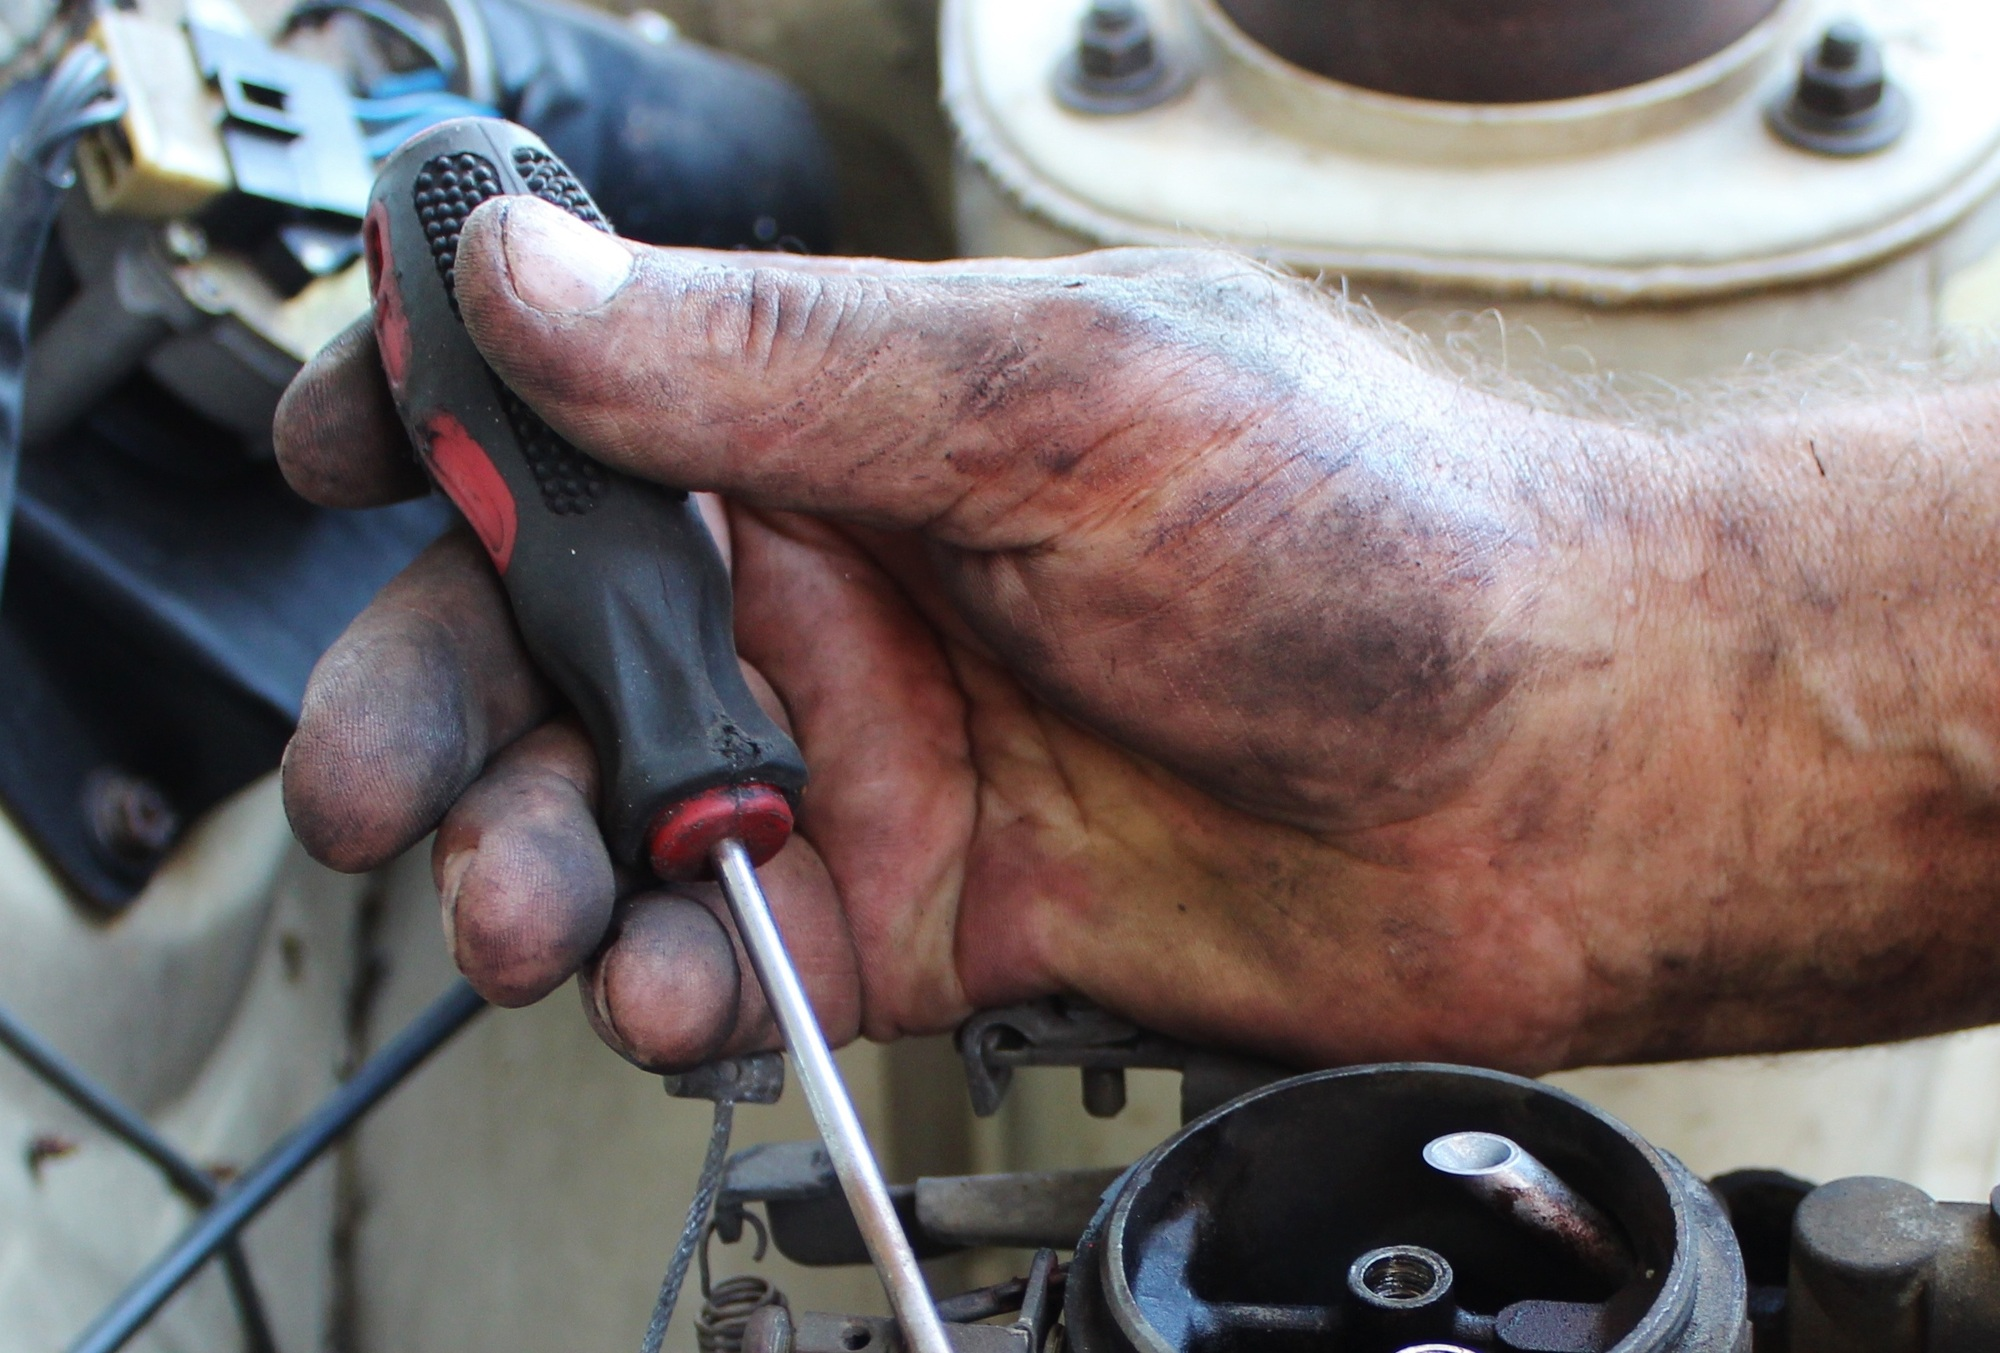 mechanic's hand with screwdriver